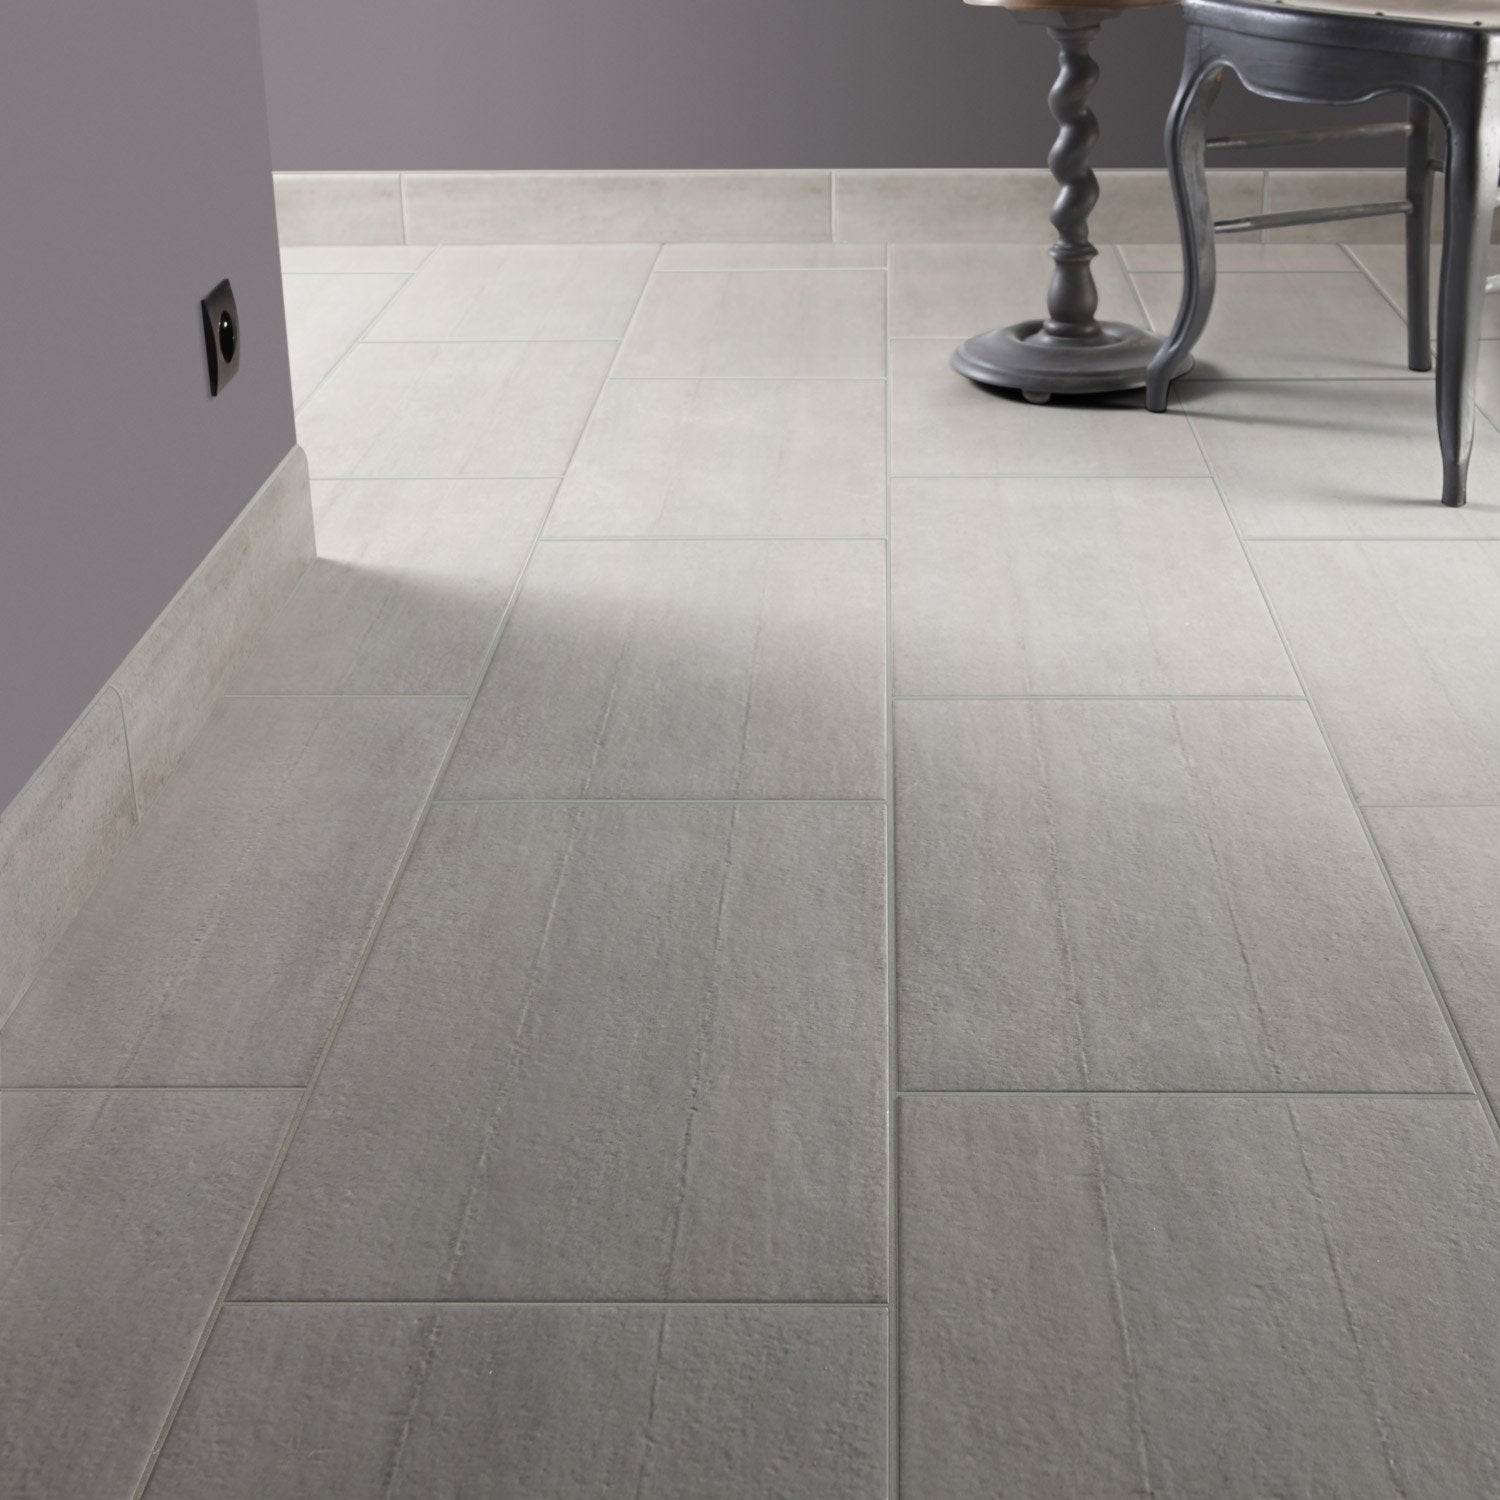 Carrelage interieur leroy merlin 28 images un for Carrelage clipsable leroy merlin